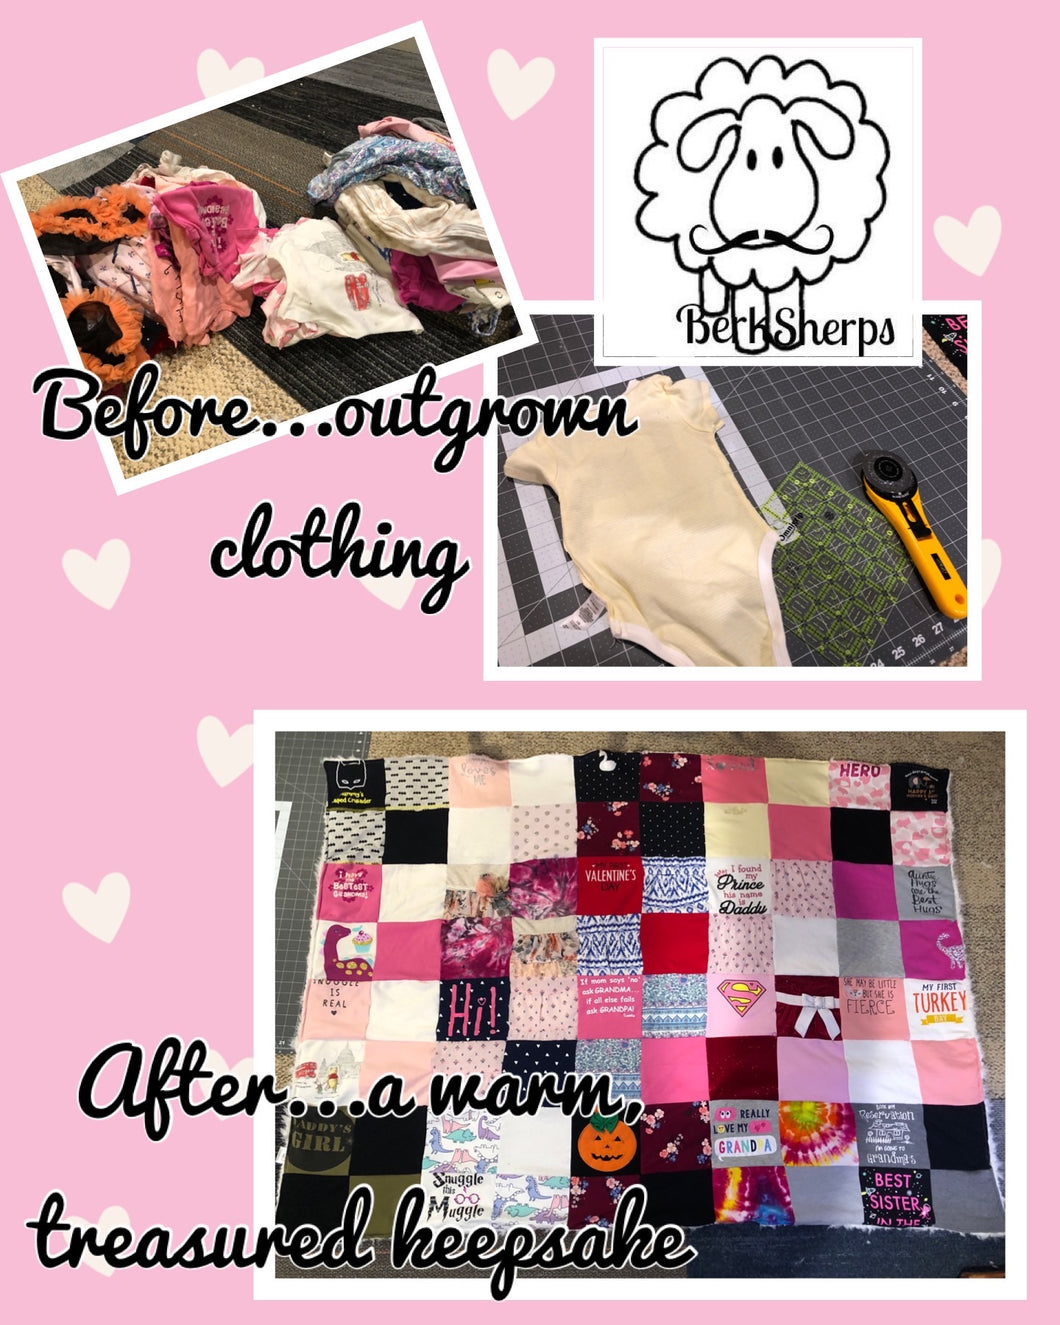 Memory Blanket for Baby/Child Clothing